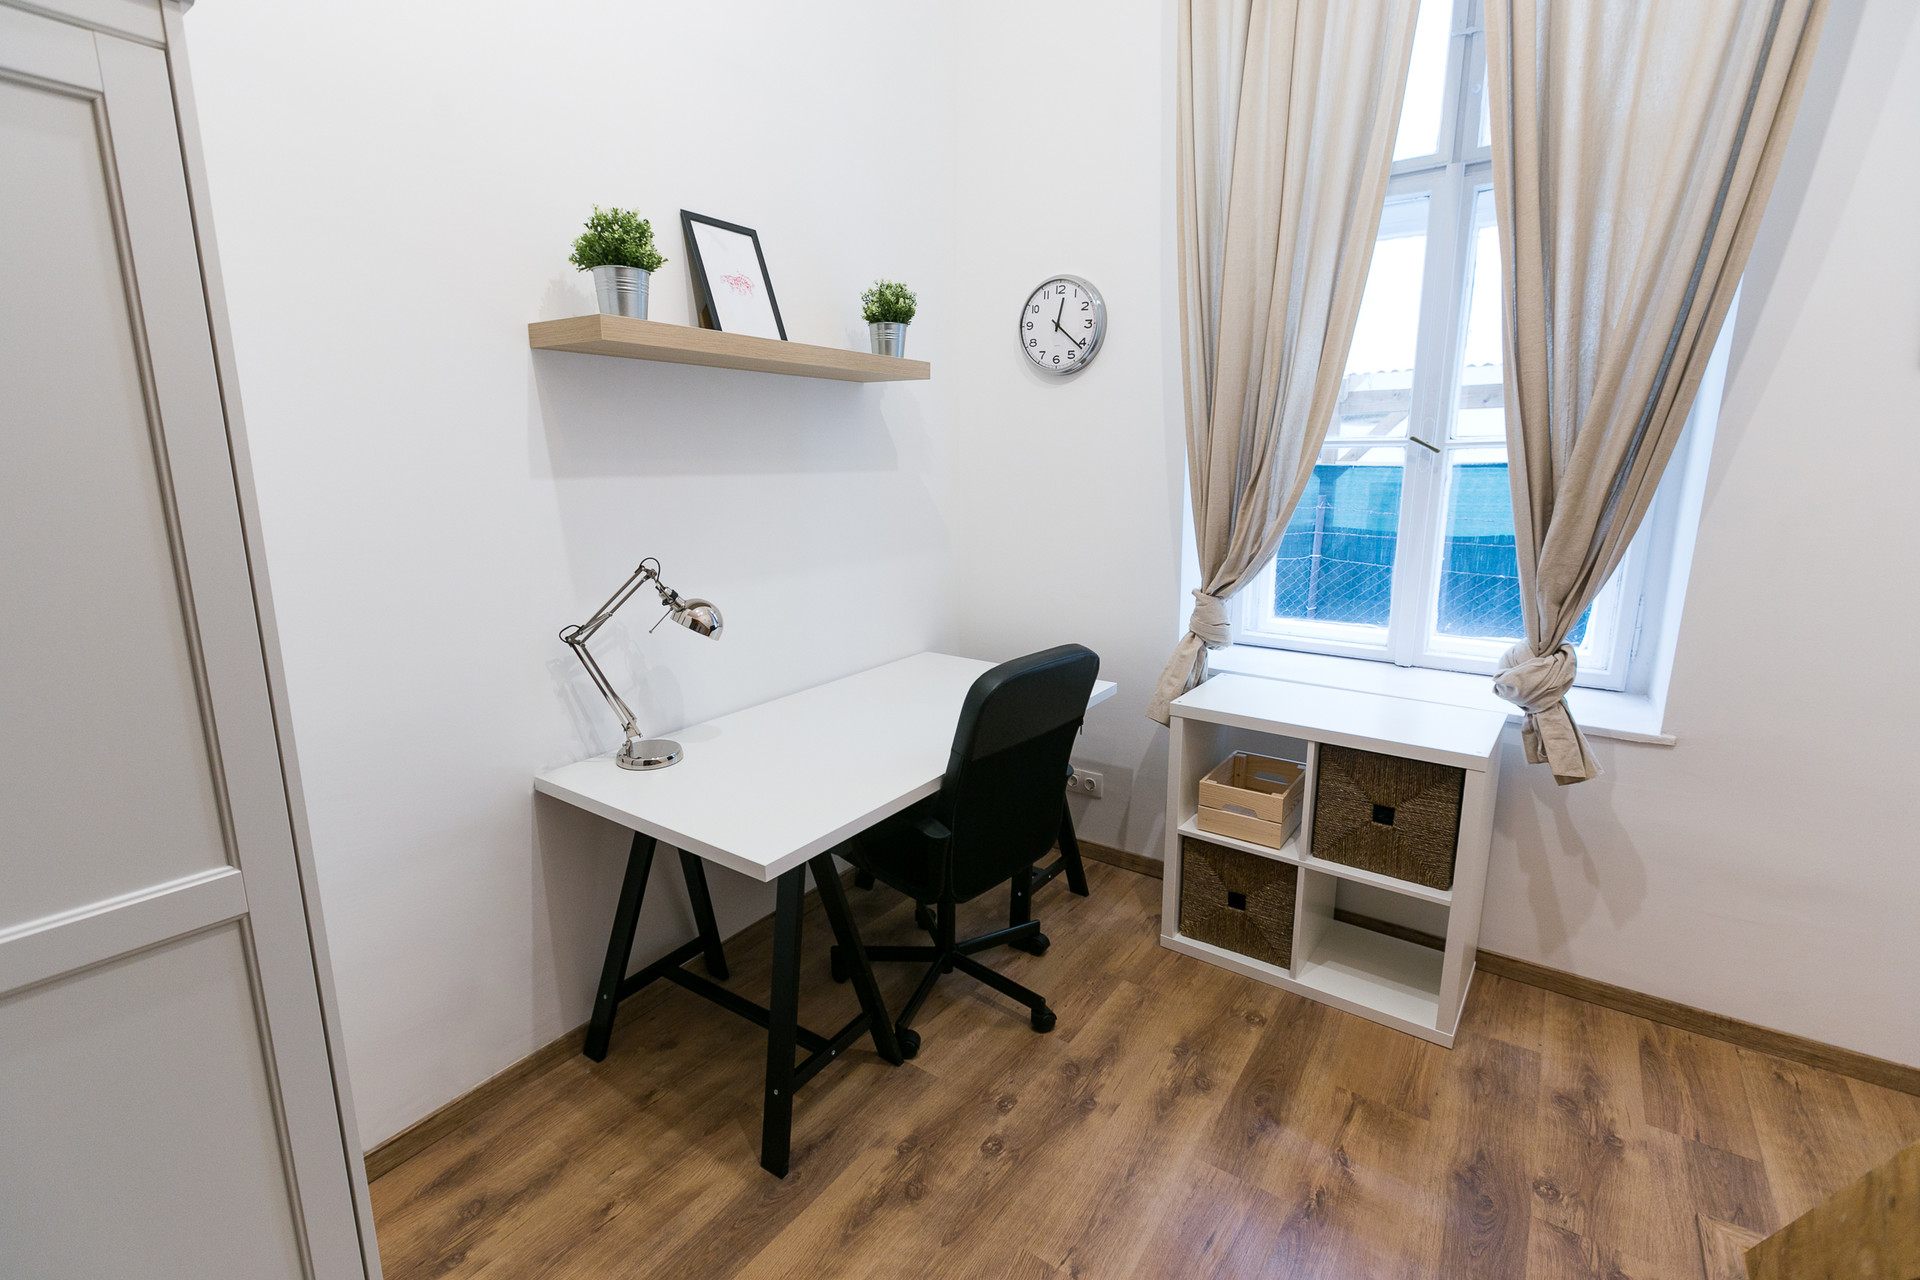 3 bedroom modern flat in Budapest, district 7 | Flat rent ...